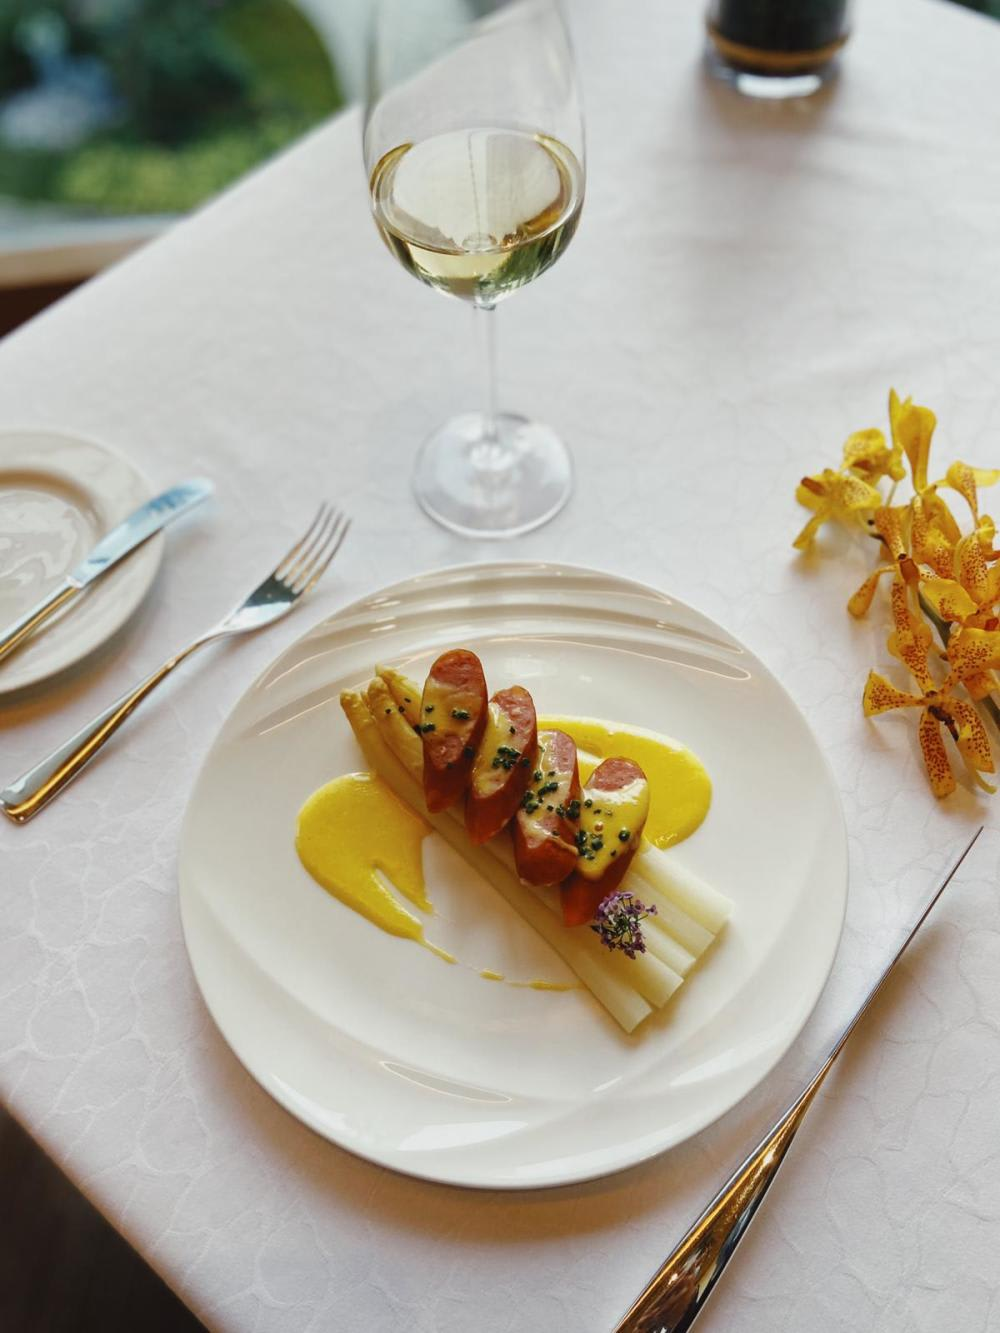 German white asparagus paired with Riesling